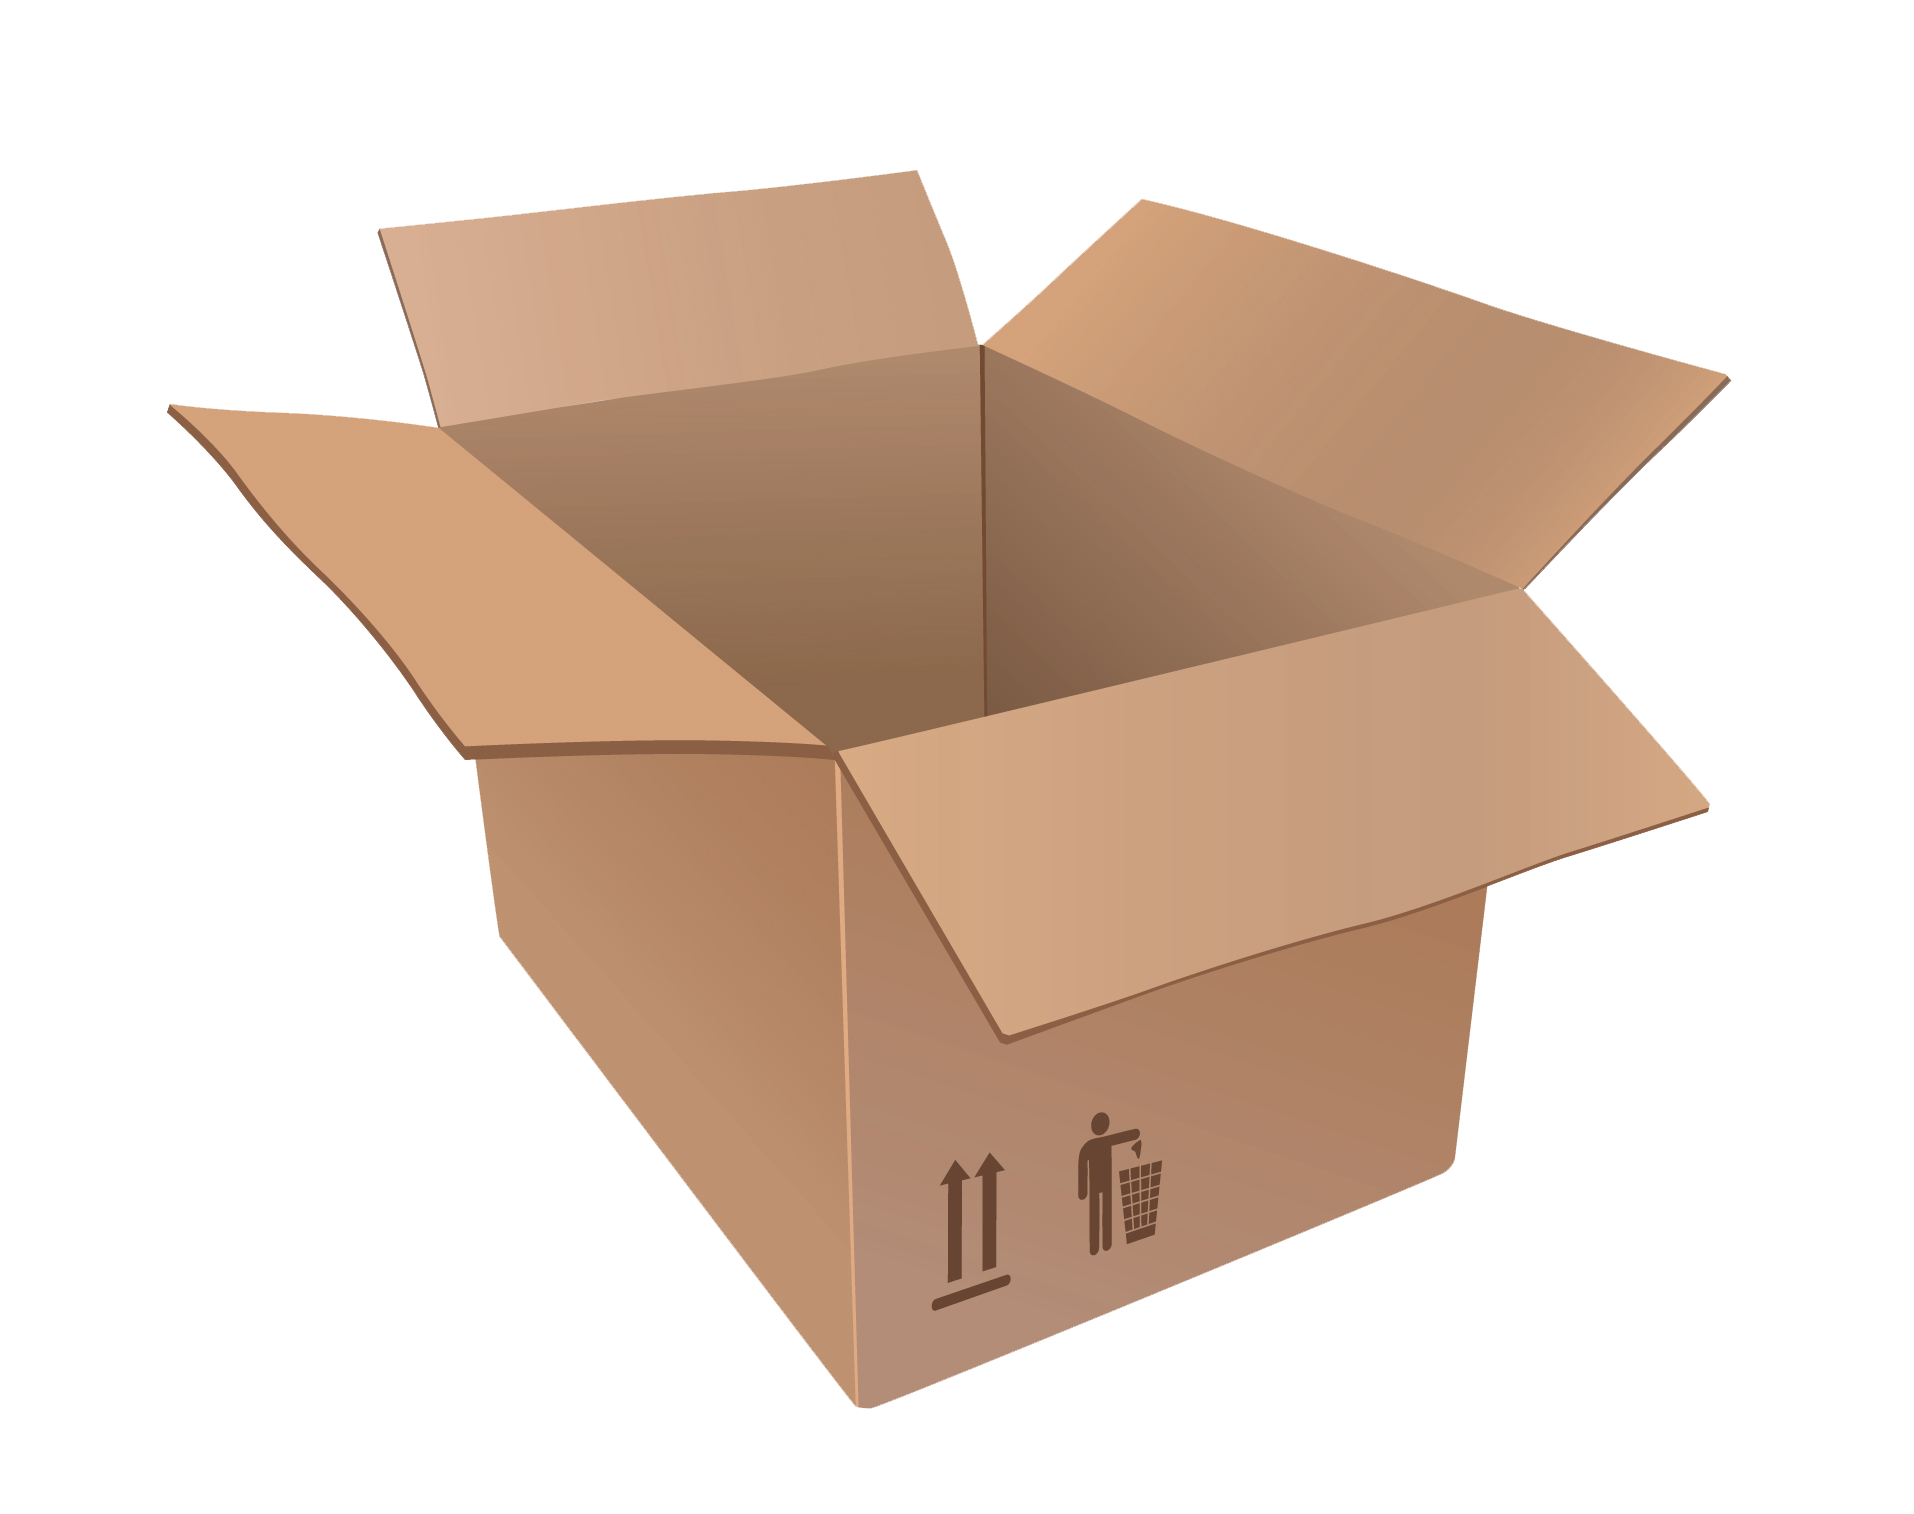 Box png. Images free download